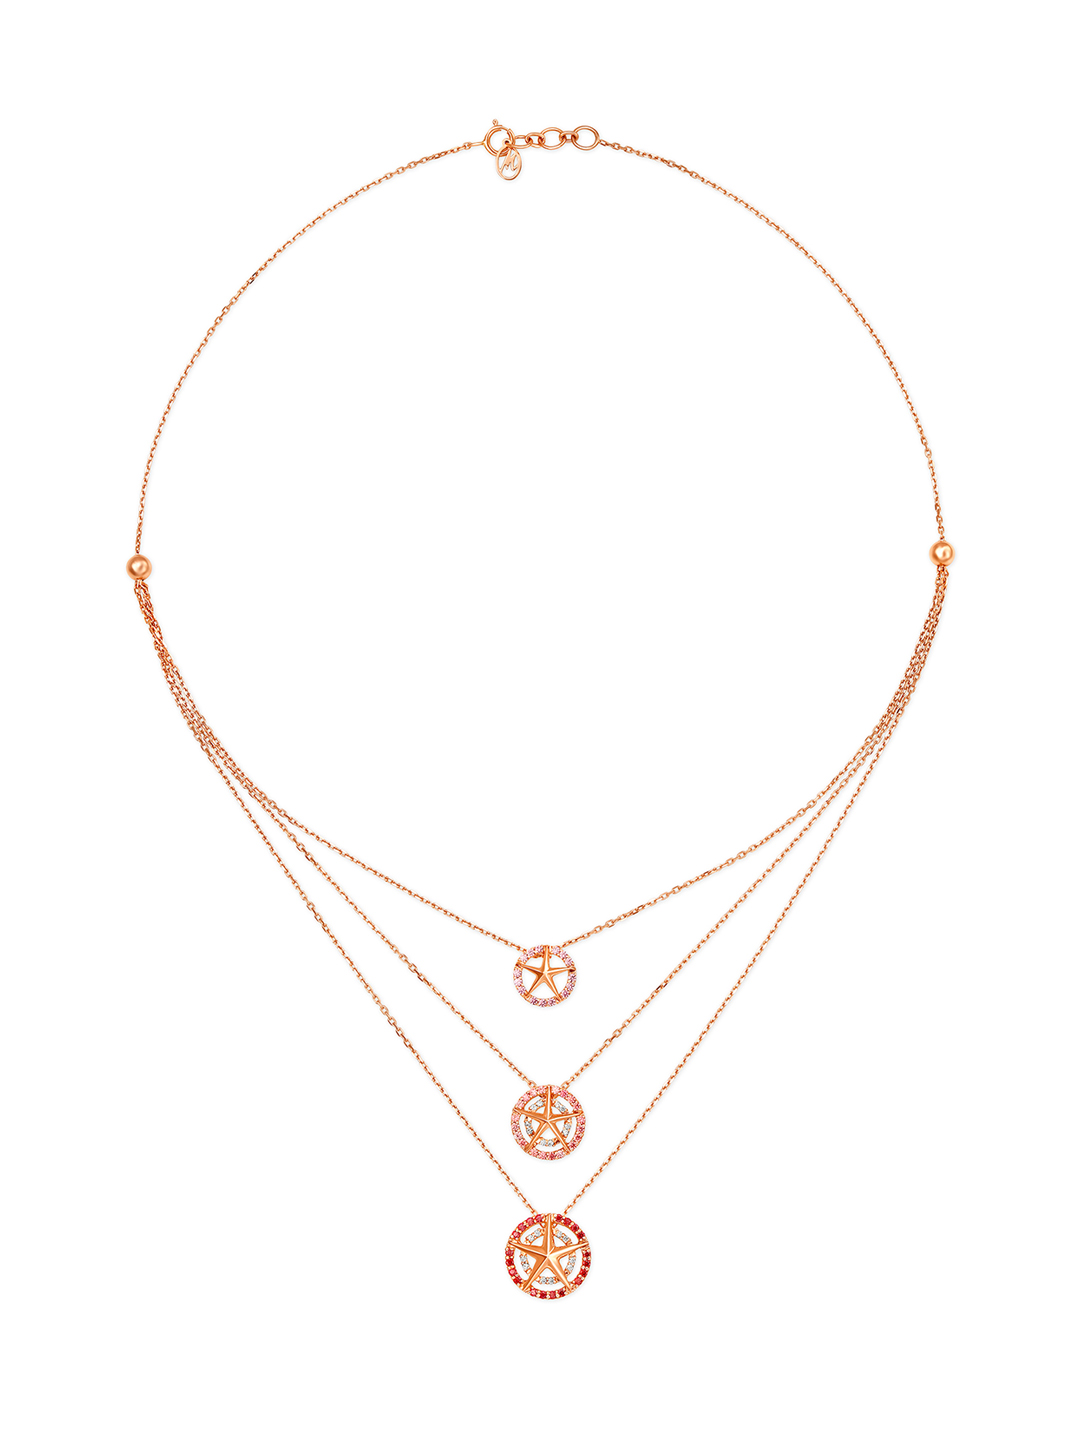 Mia by Tanishq 14KT Rose Gold Cubic Zirconia Neckwear Price in India